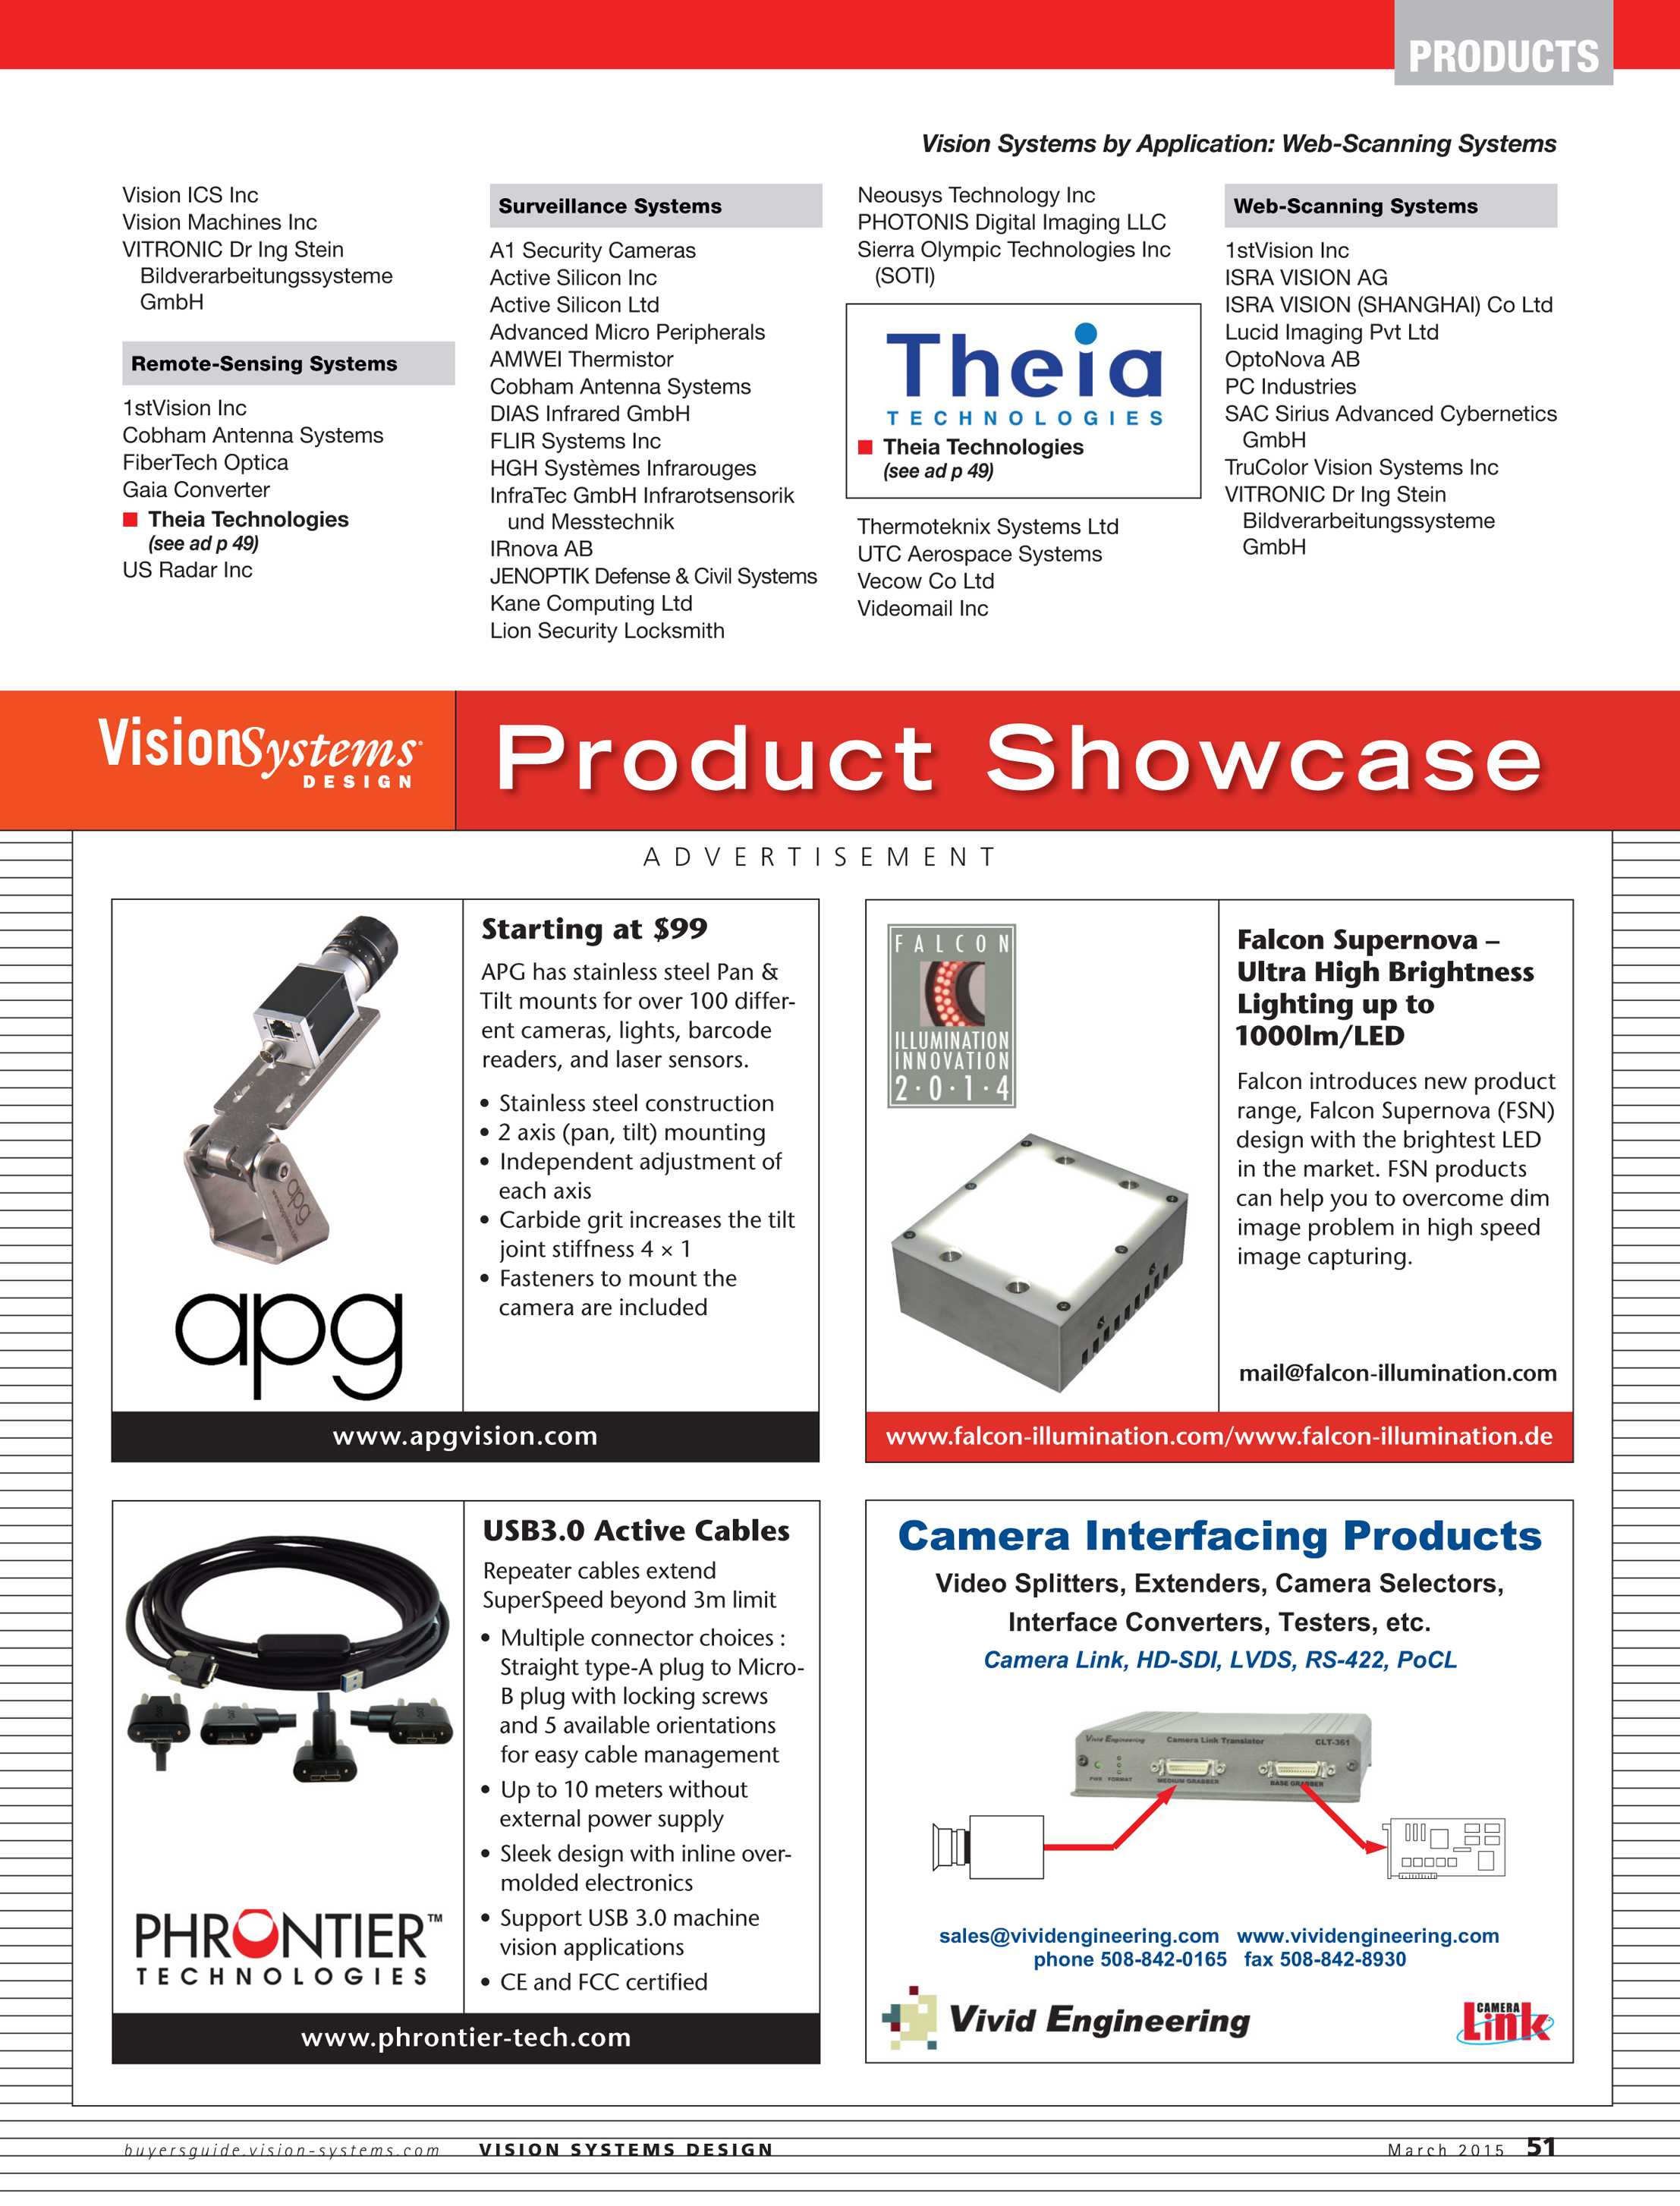 Vision Systems March 2015 Page 51